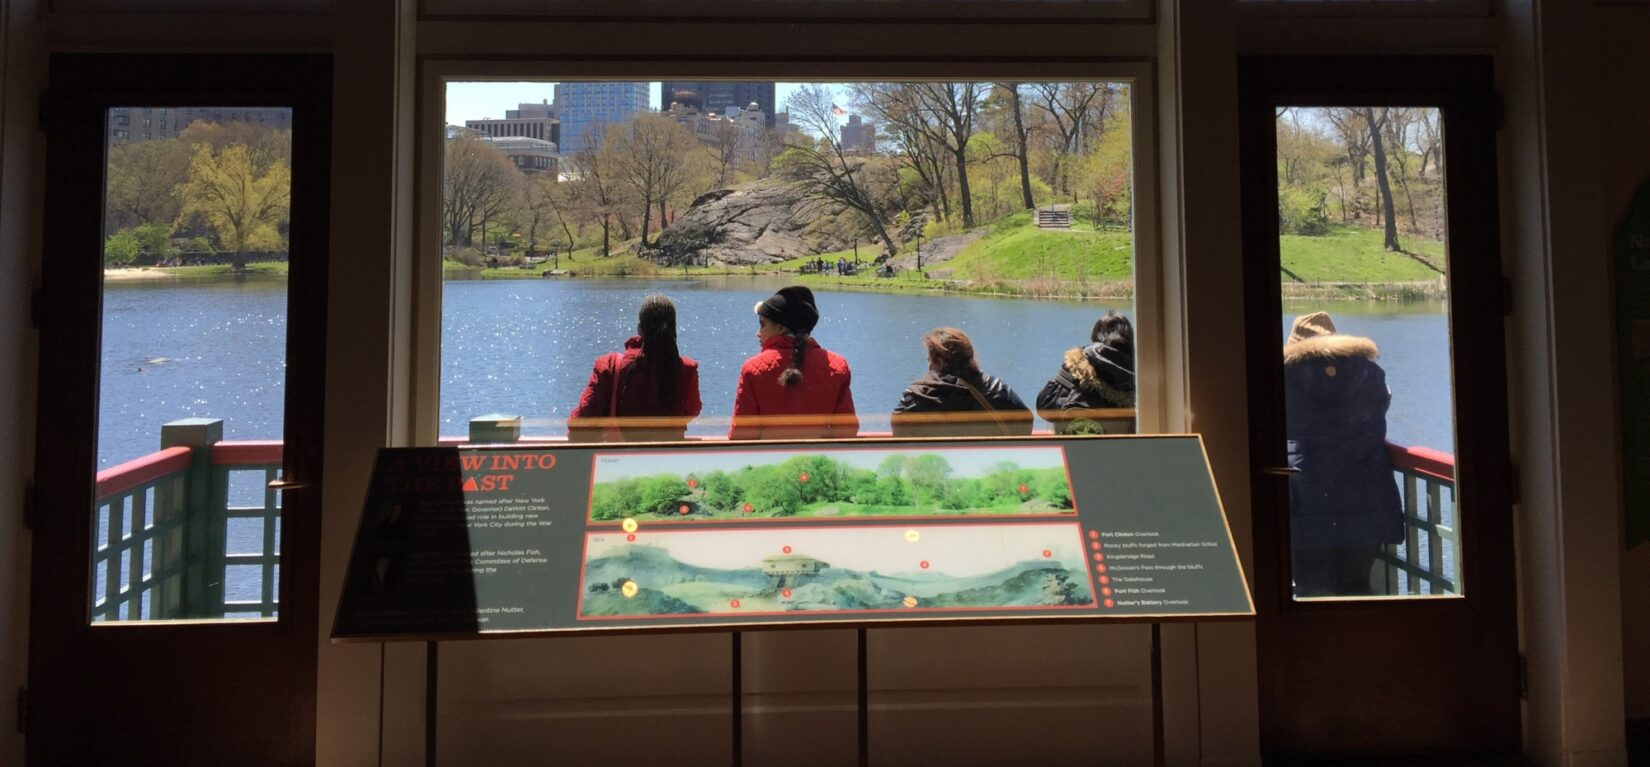 Part of the exhibit stands in front of a window, overlooking the landscape of the Harlem Meer it describes